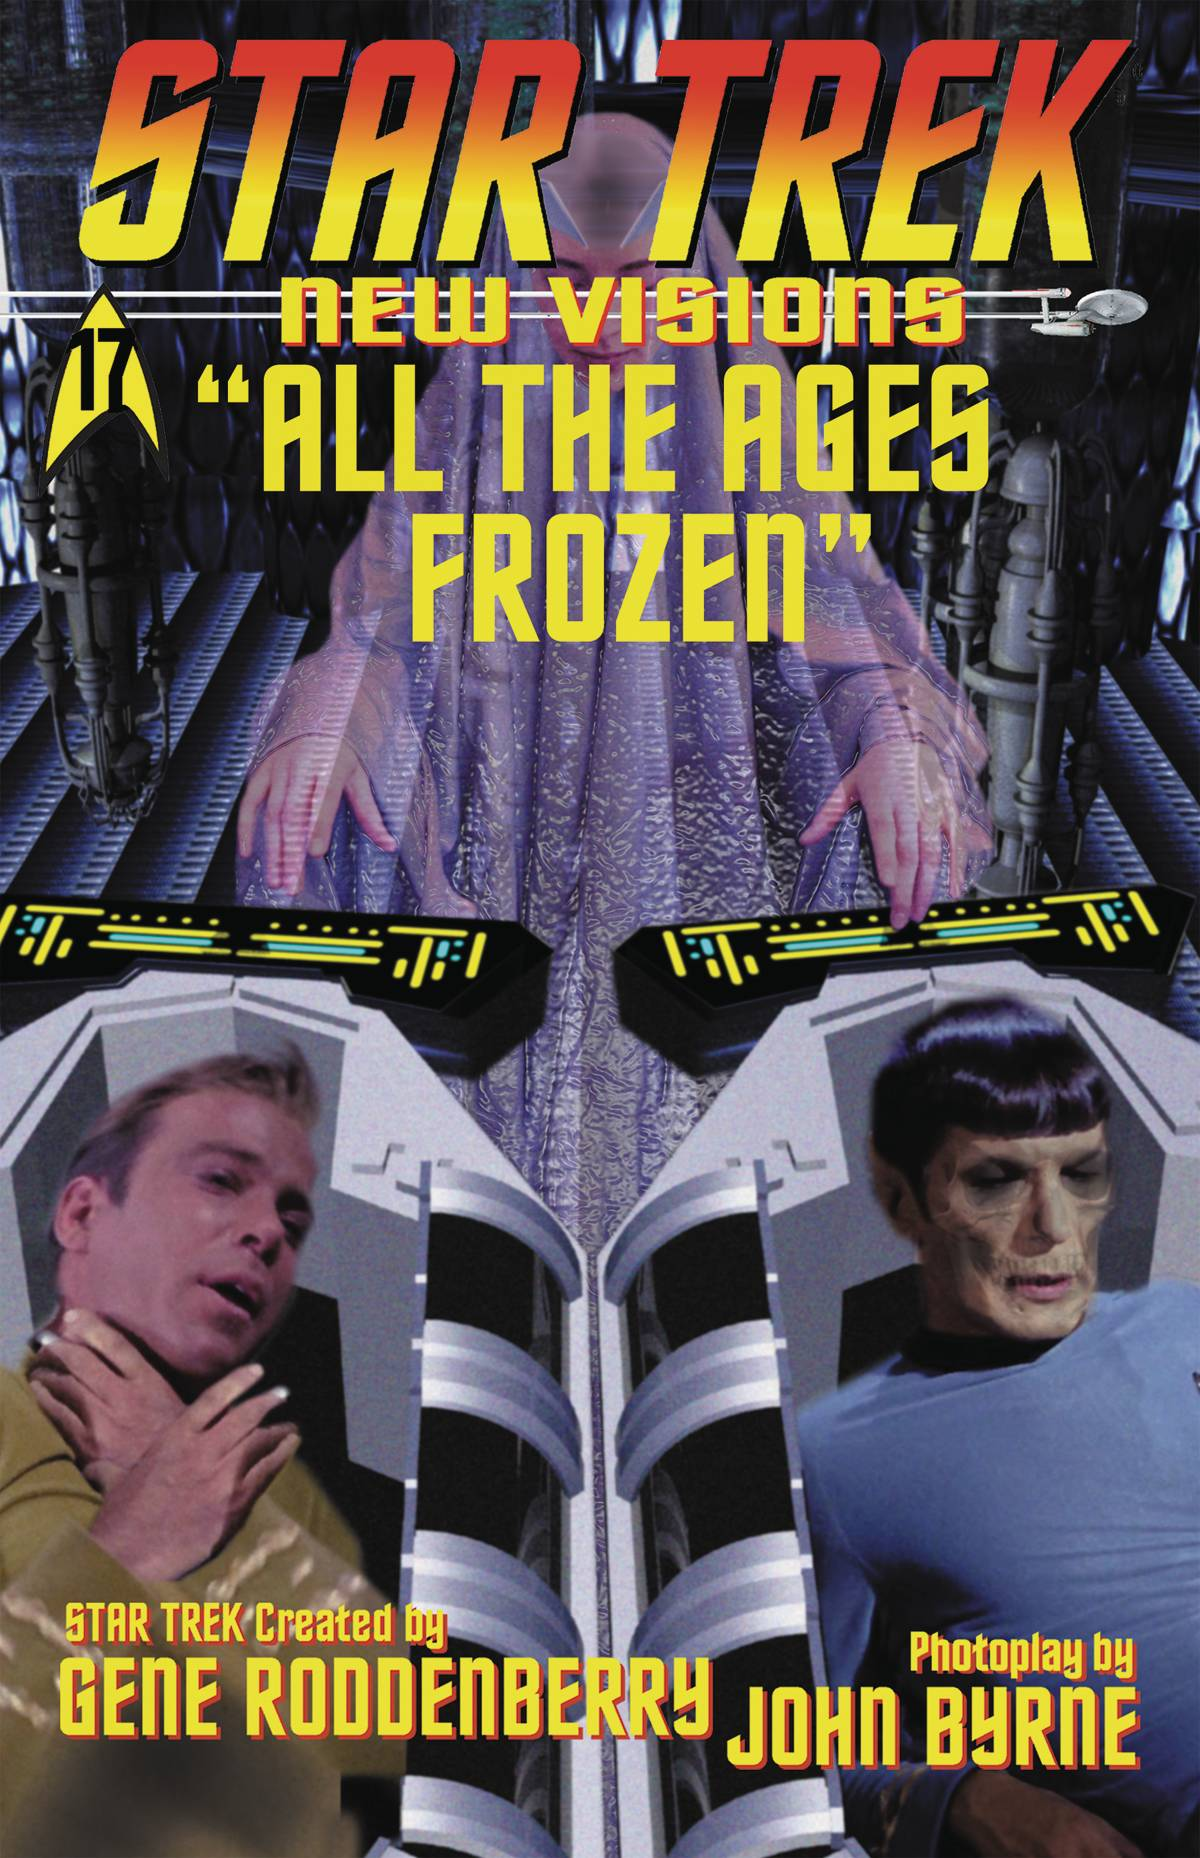 STAR TREK: NEW VISIONS#17: ALL THE AGES FROZEN